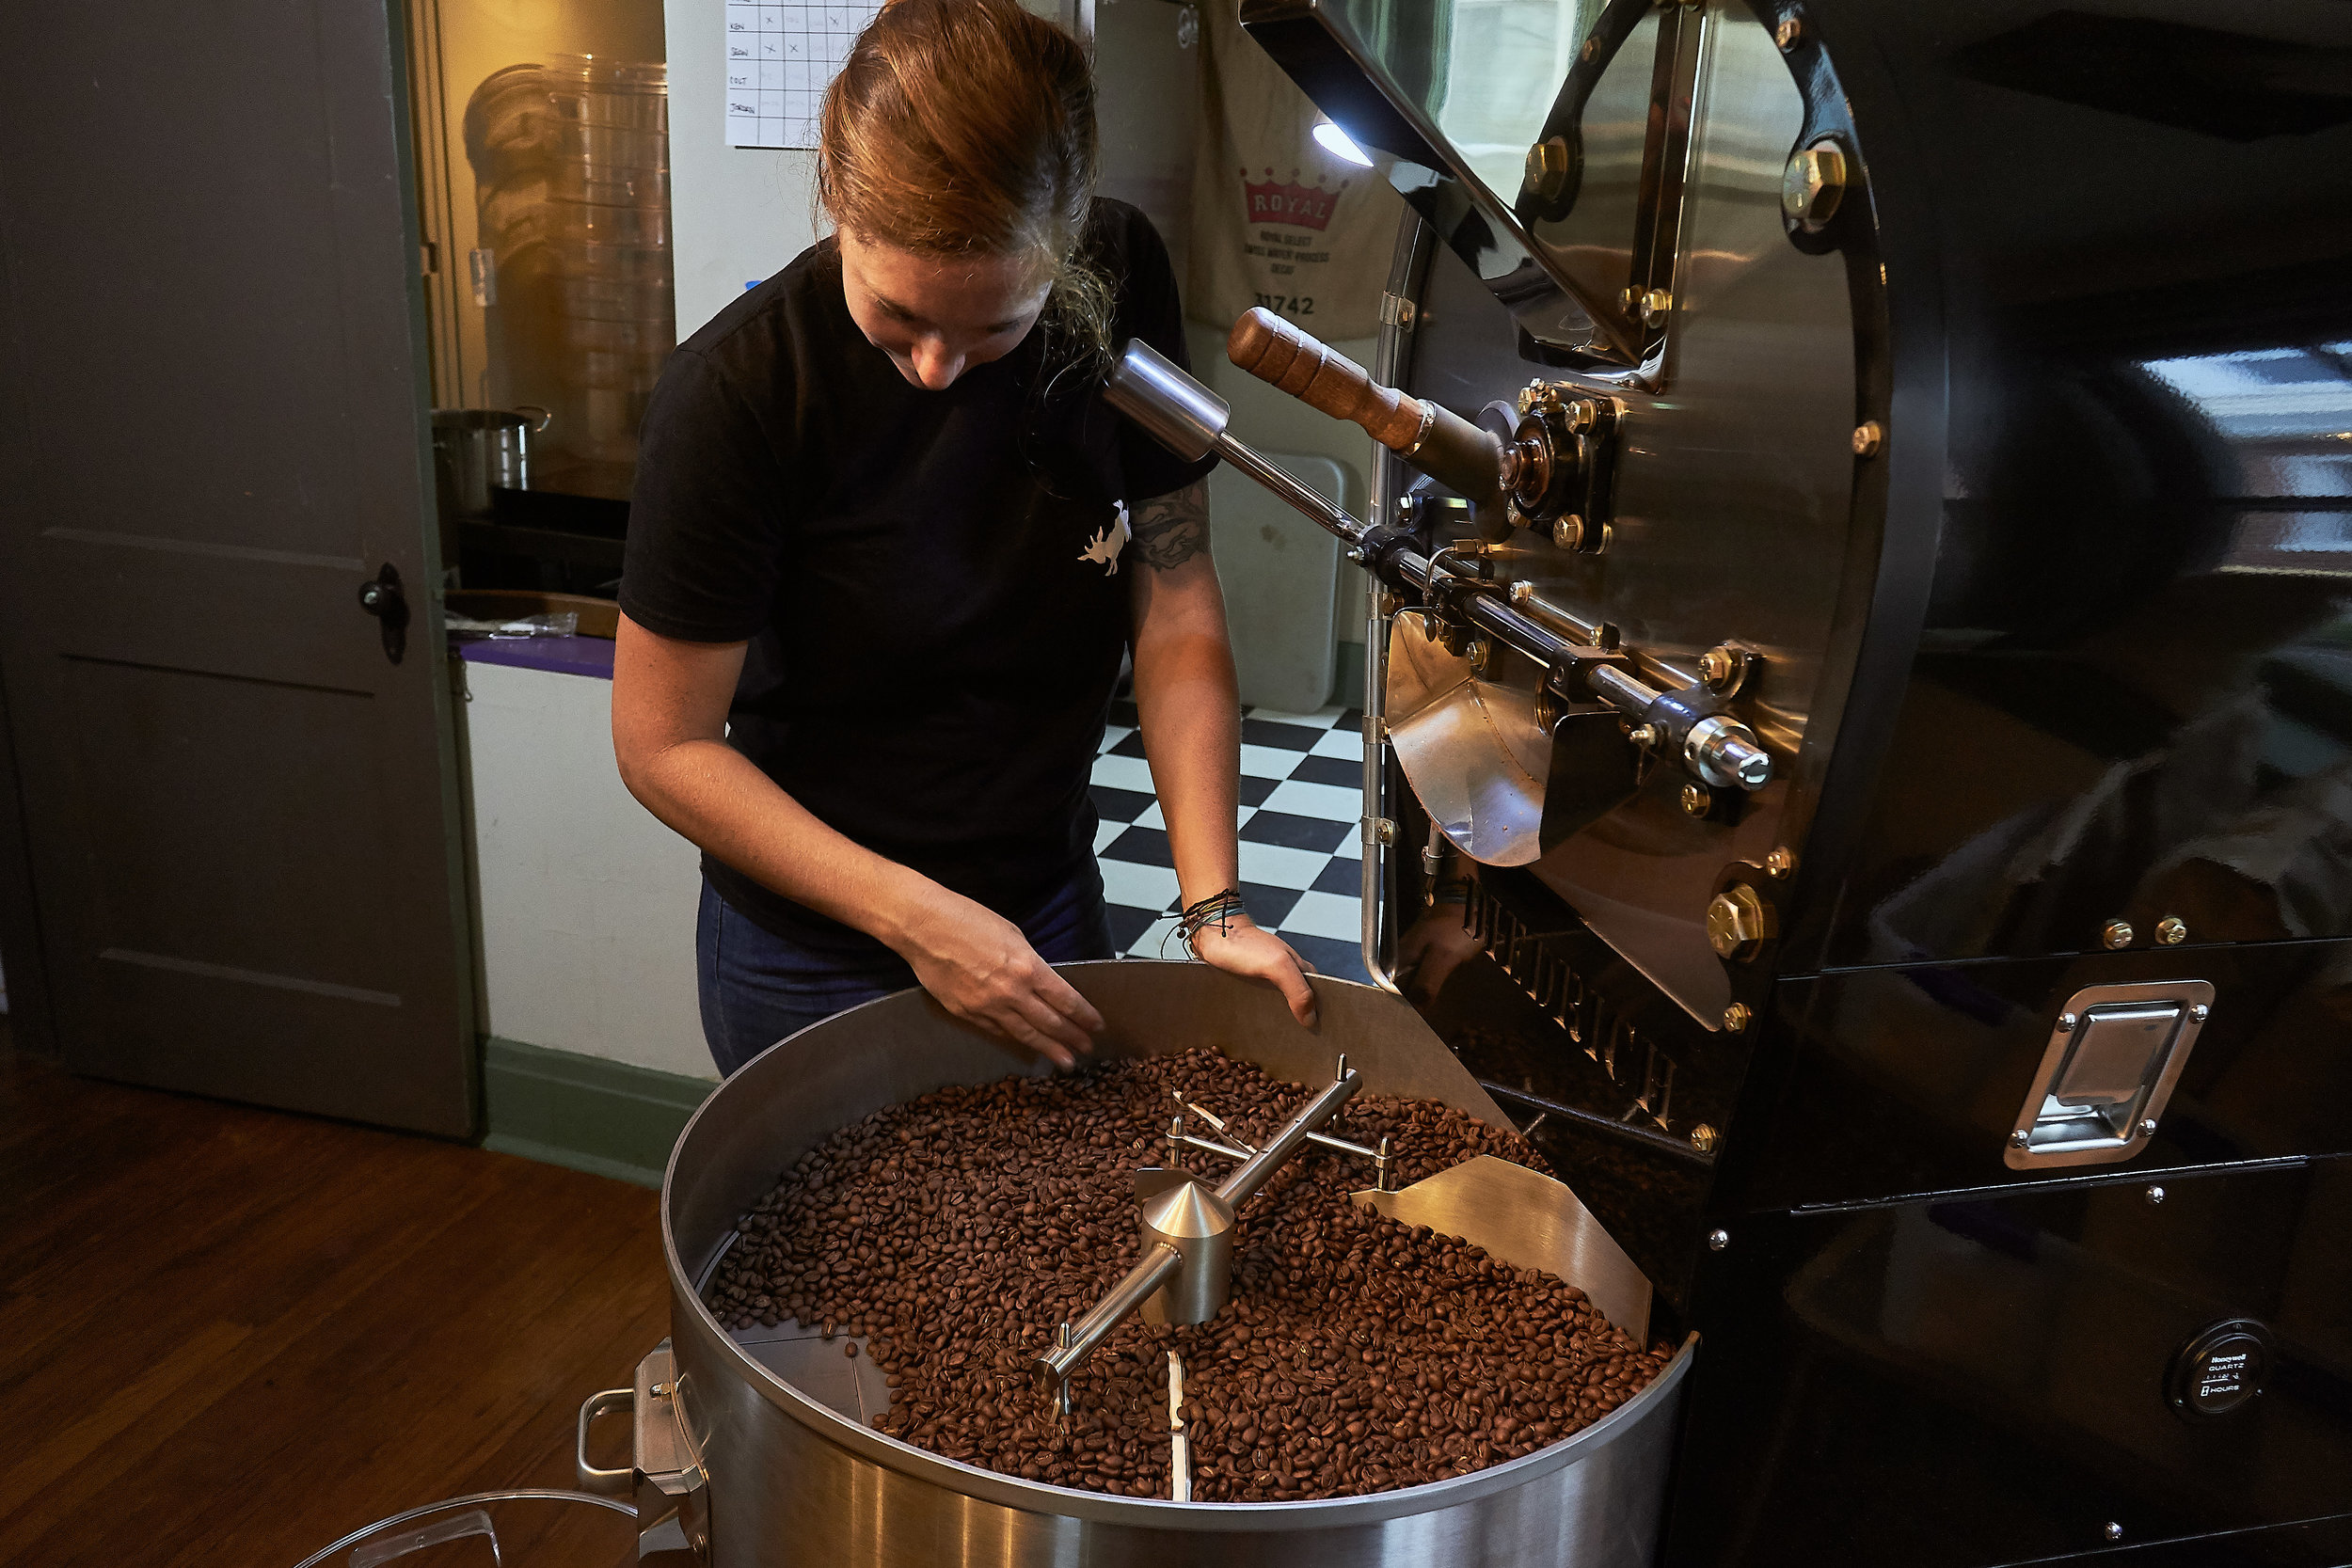 Small batch roasting allows for the utmost quality control.